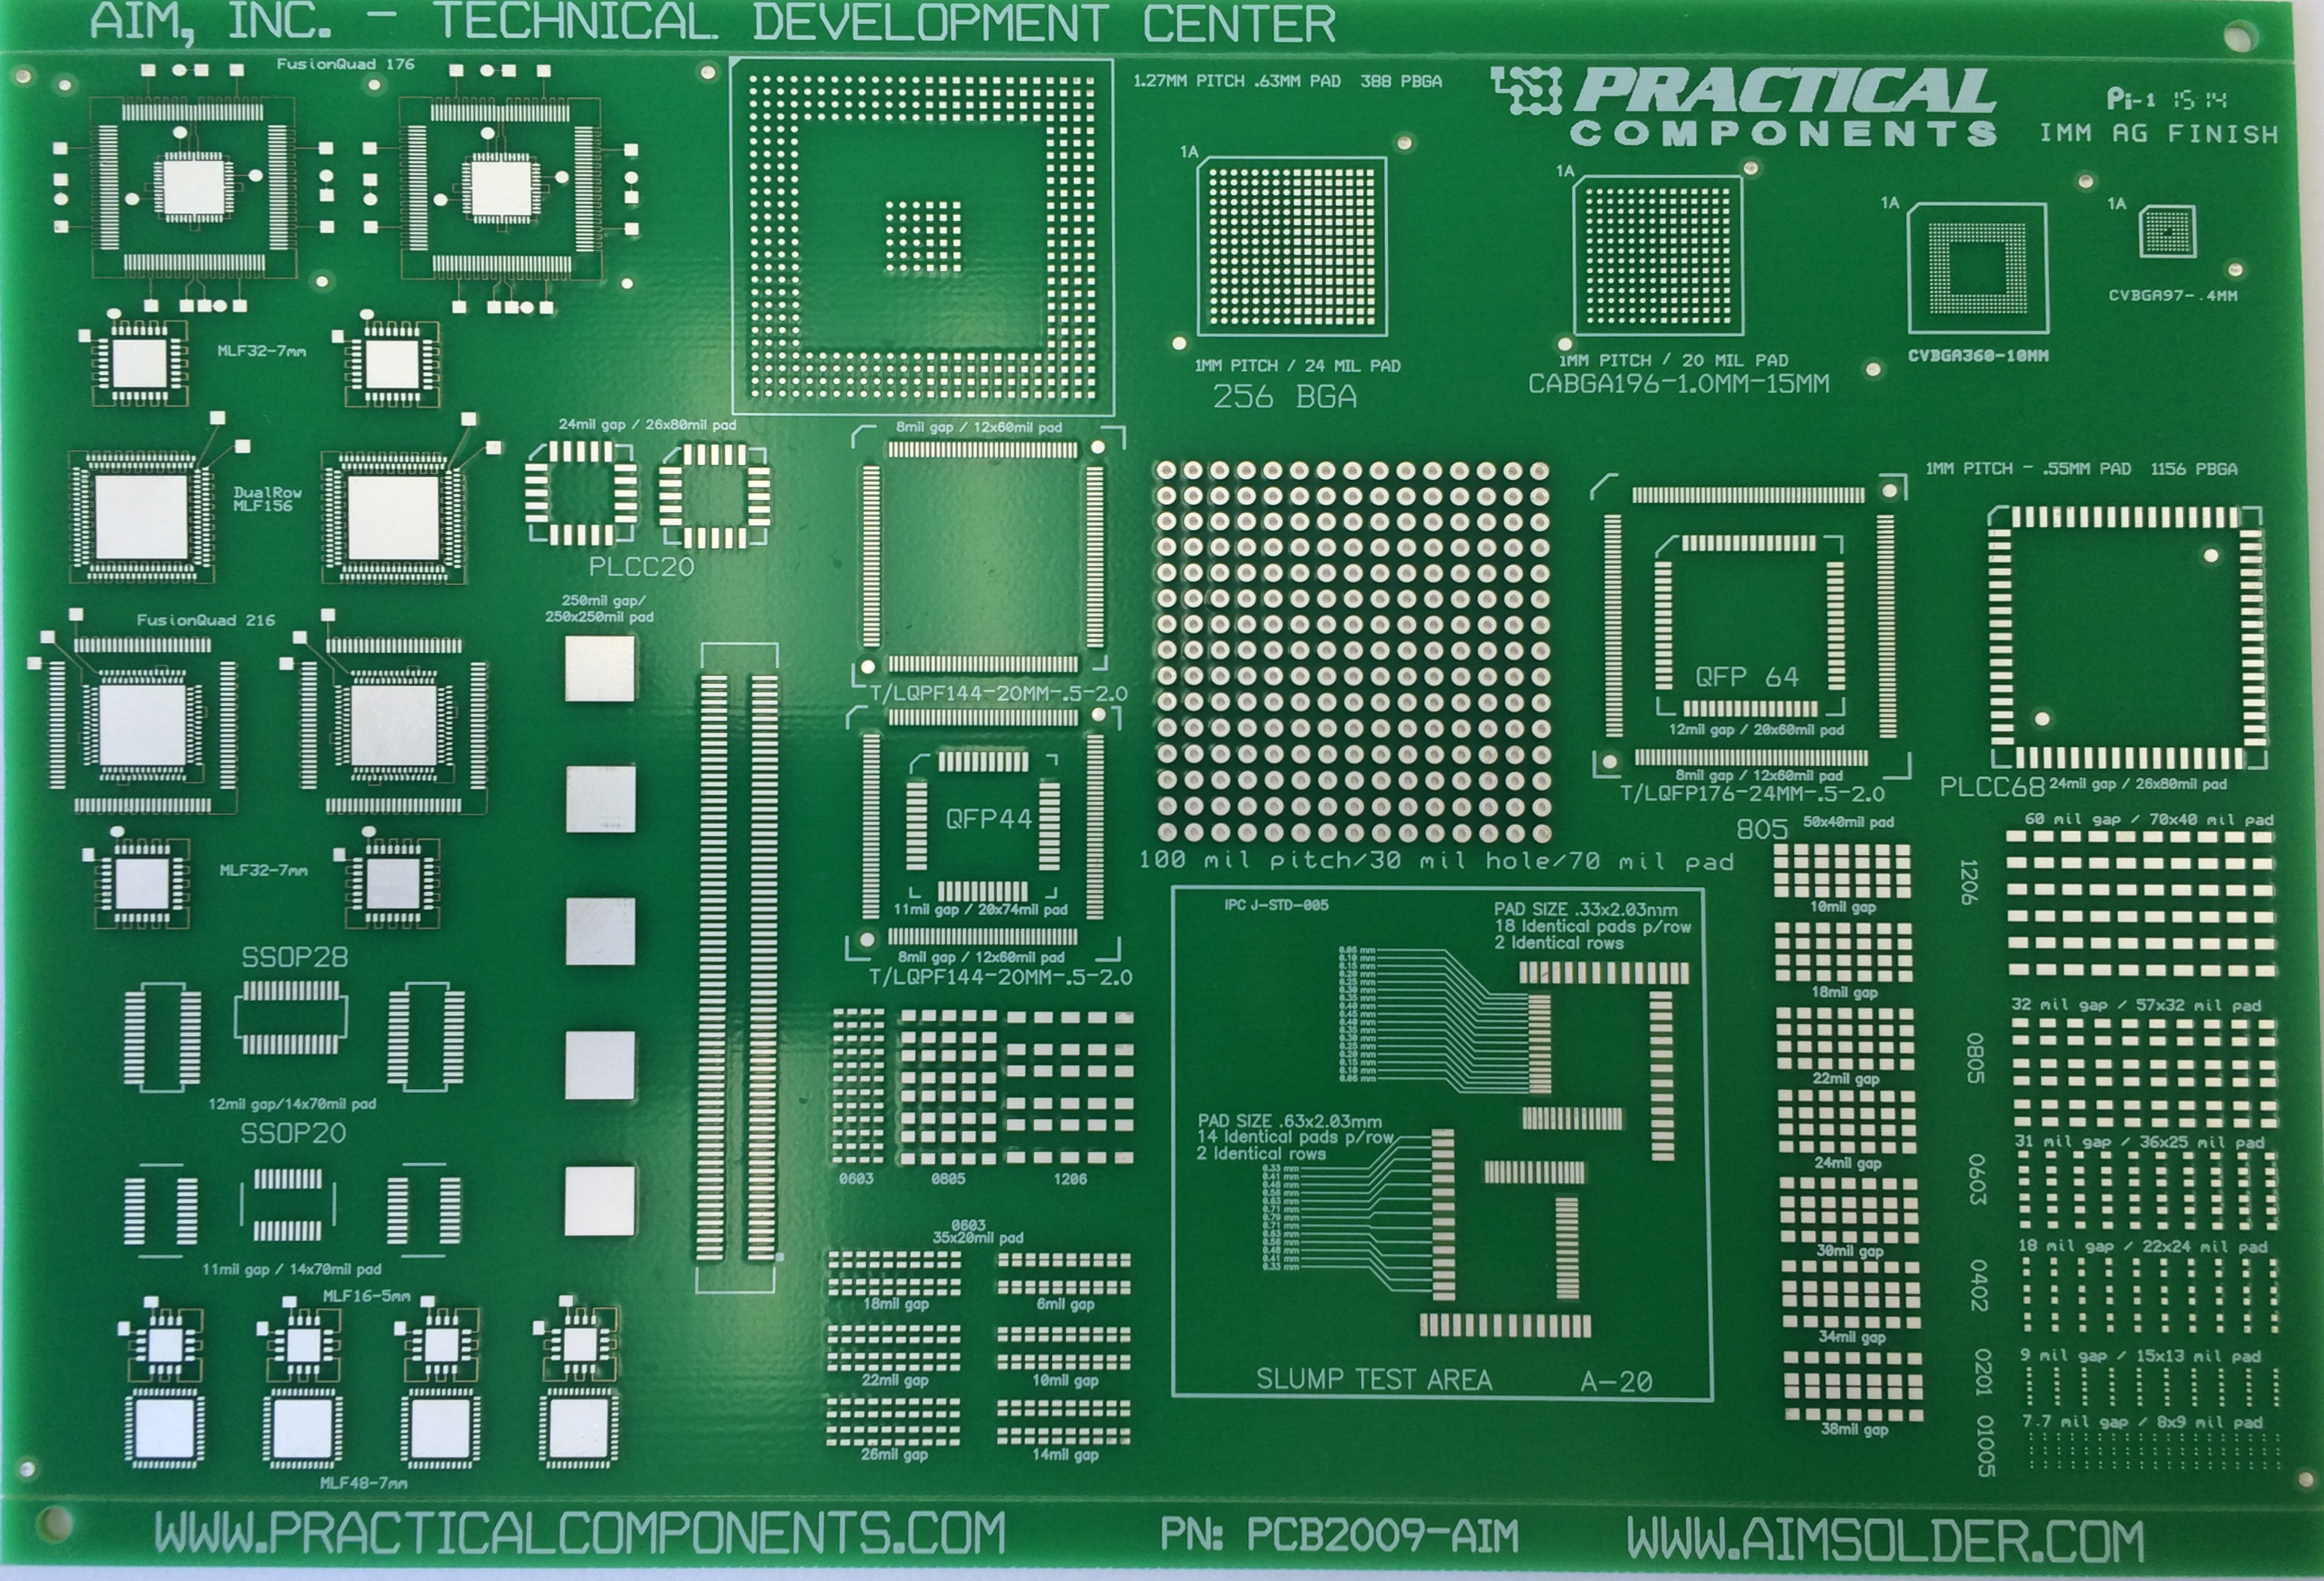 PC2009 AIM Solder Print Test Board and Kit